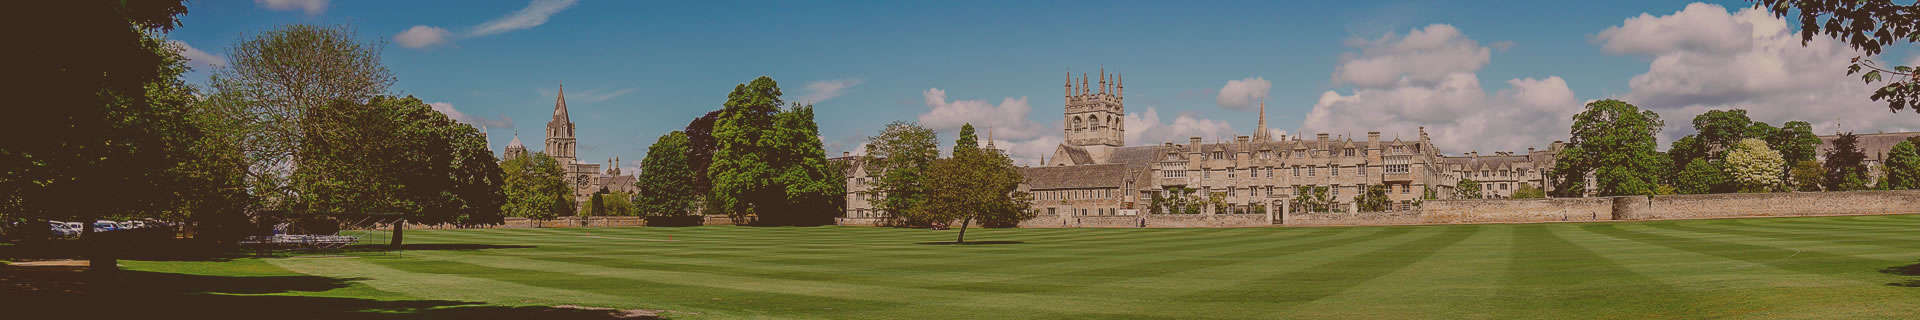 View of one of the UK's most prestigious educational institutions which non-EEA students can attend via a UK Student Visa